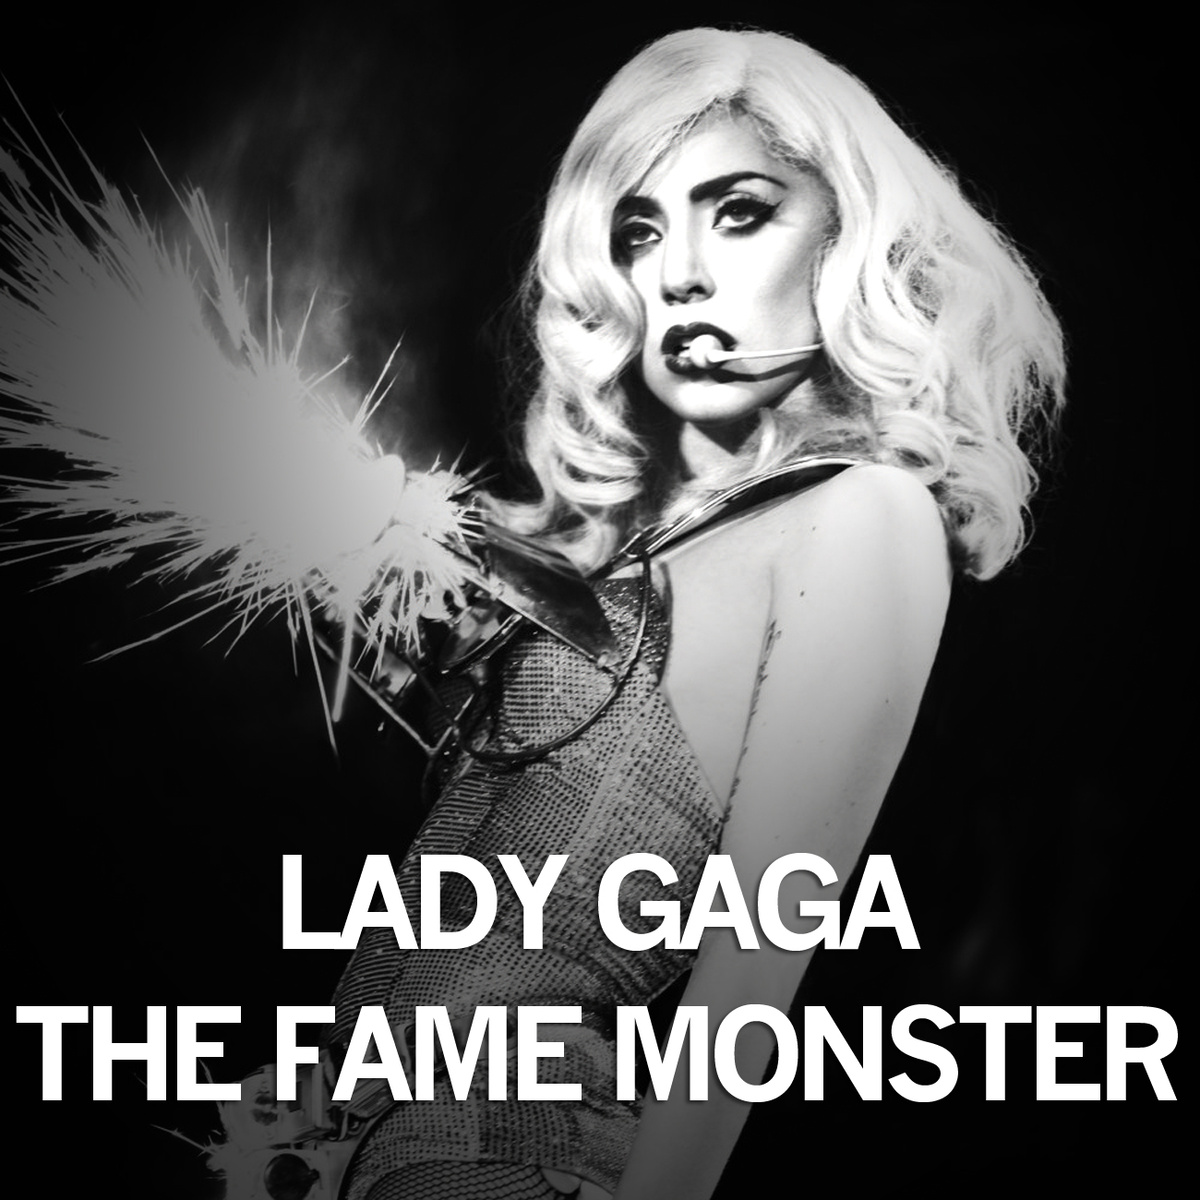 artwork, cover, lady gaga, monster ball, the fame monster